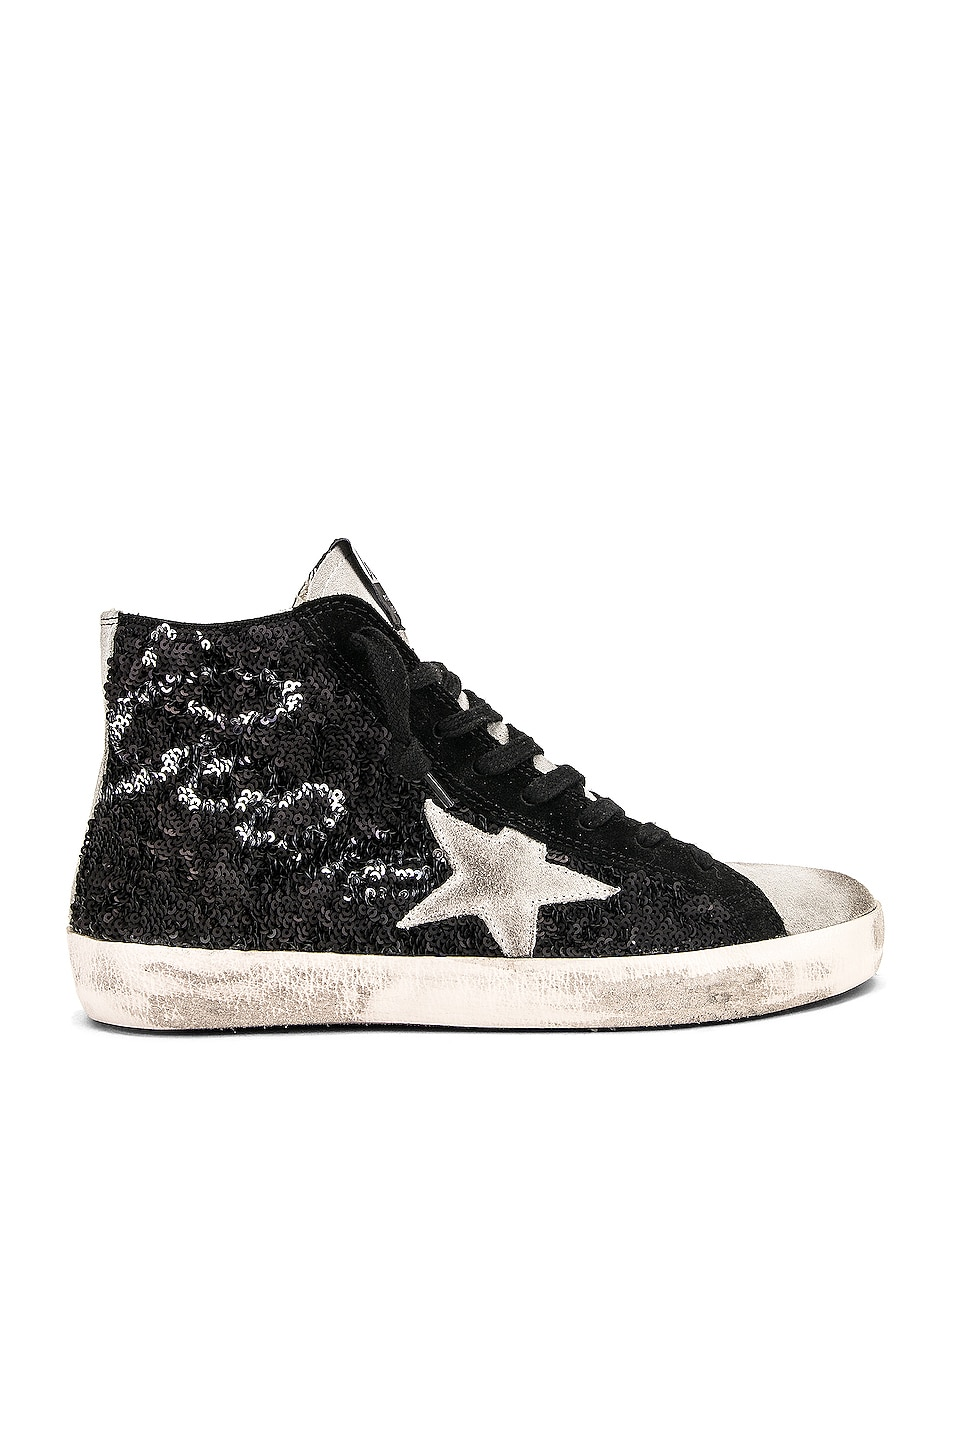 Image 1 of Golden Goose Francy Sneakers in Black Paillettes